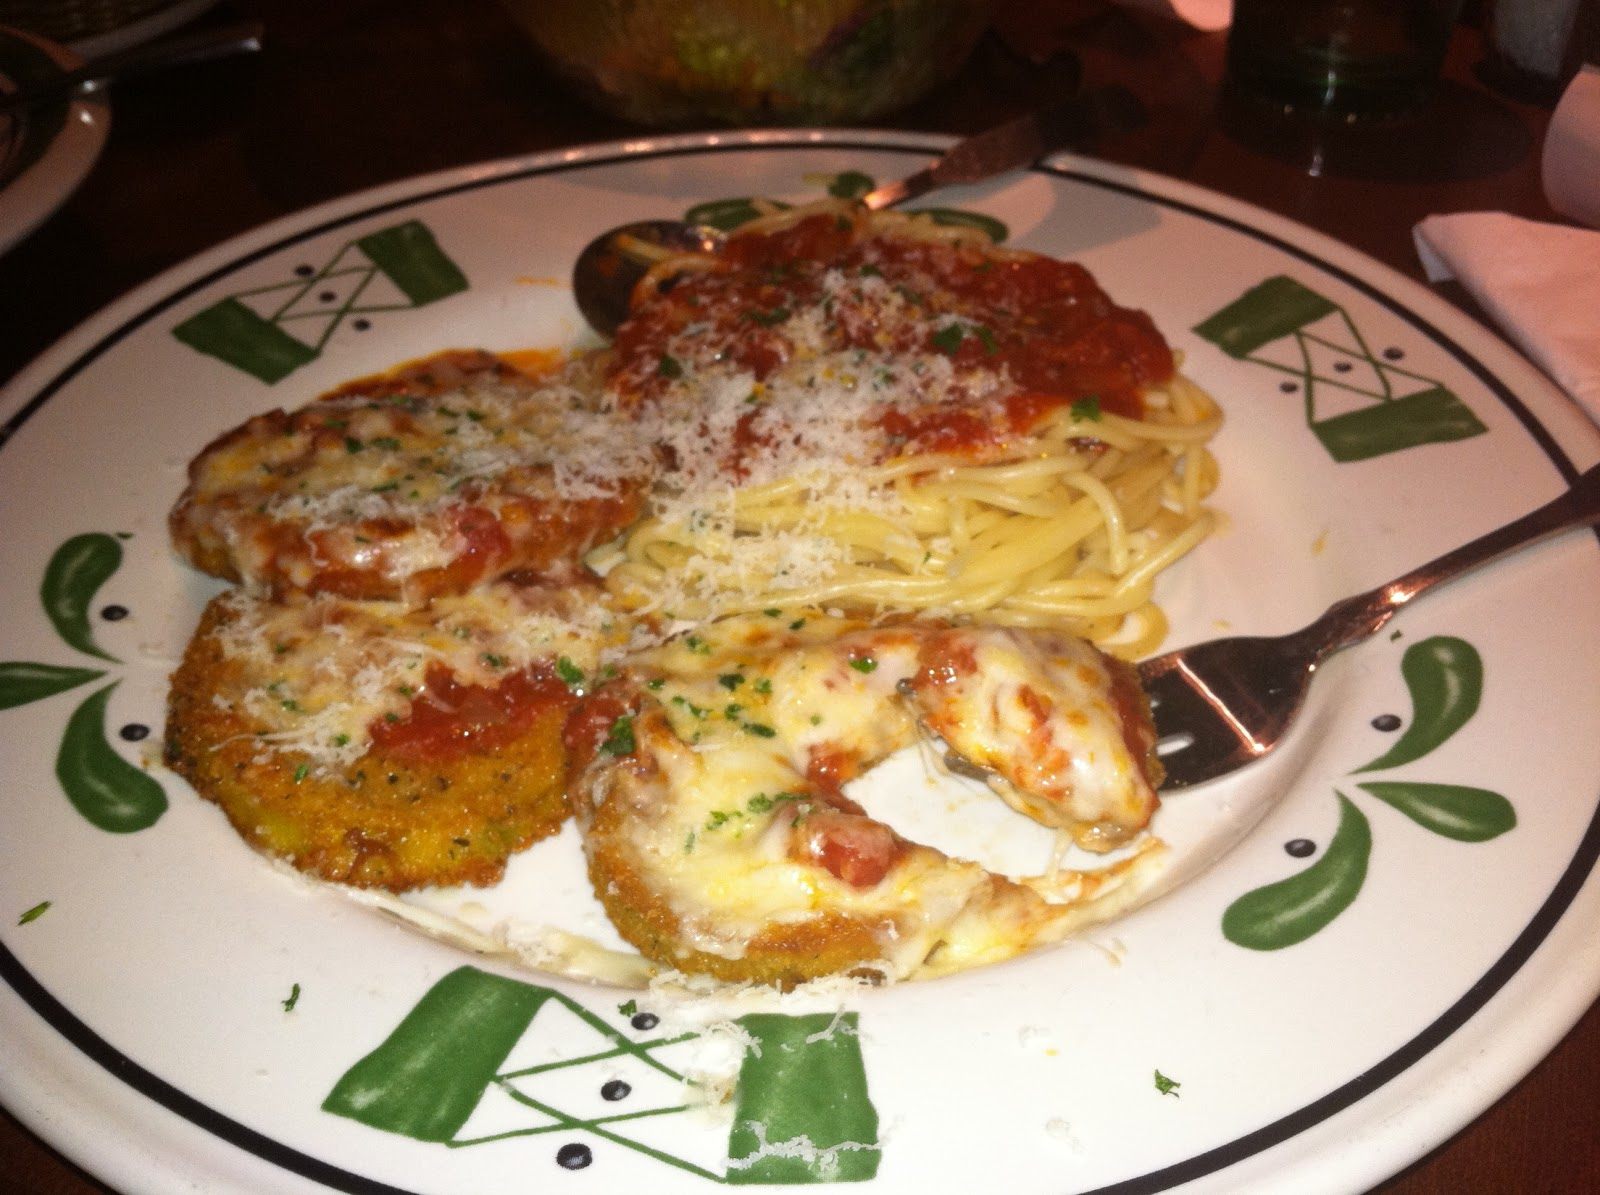 Eggplant Parmesan from Olive Garden (Personal Photo)